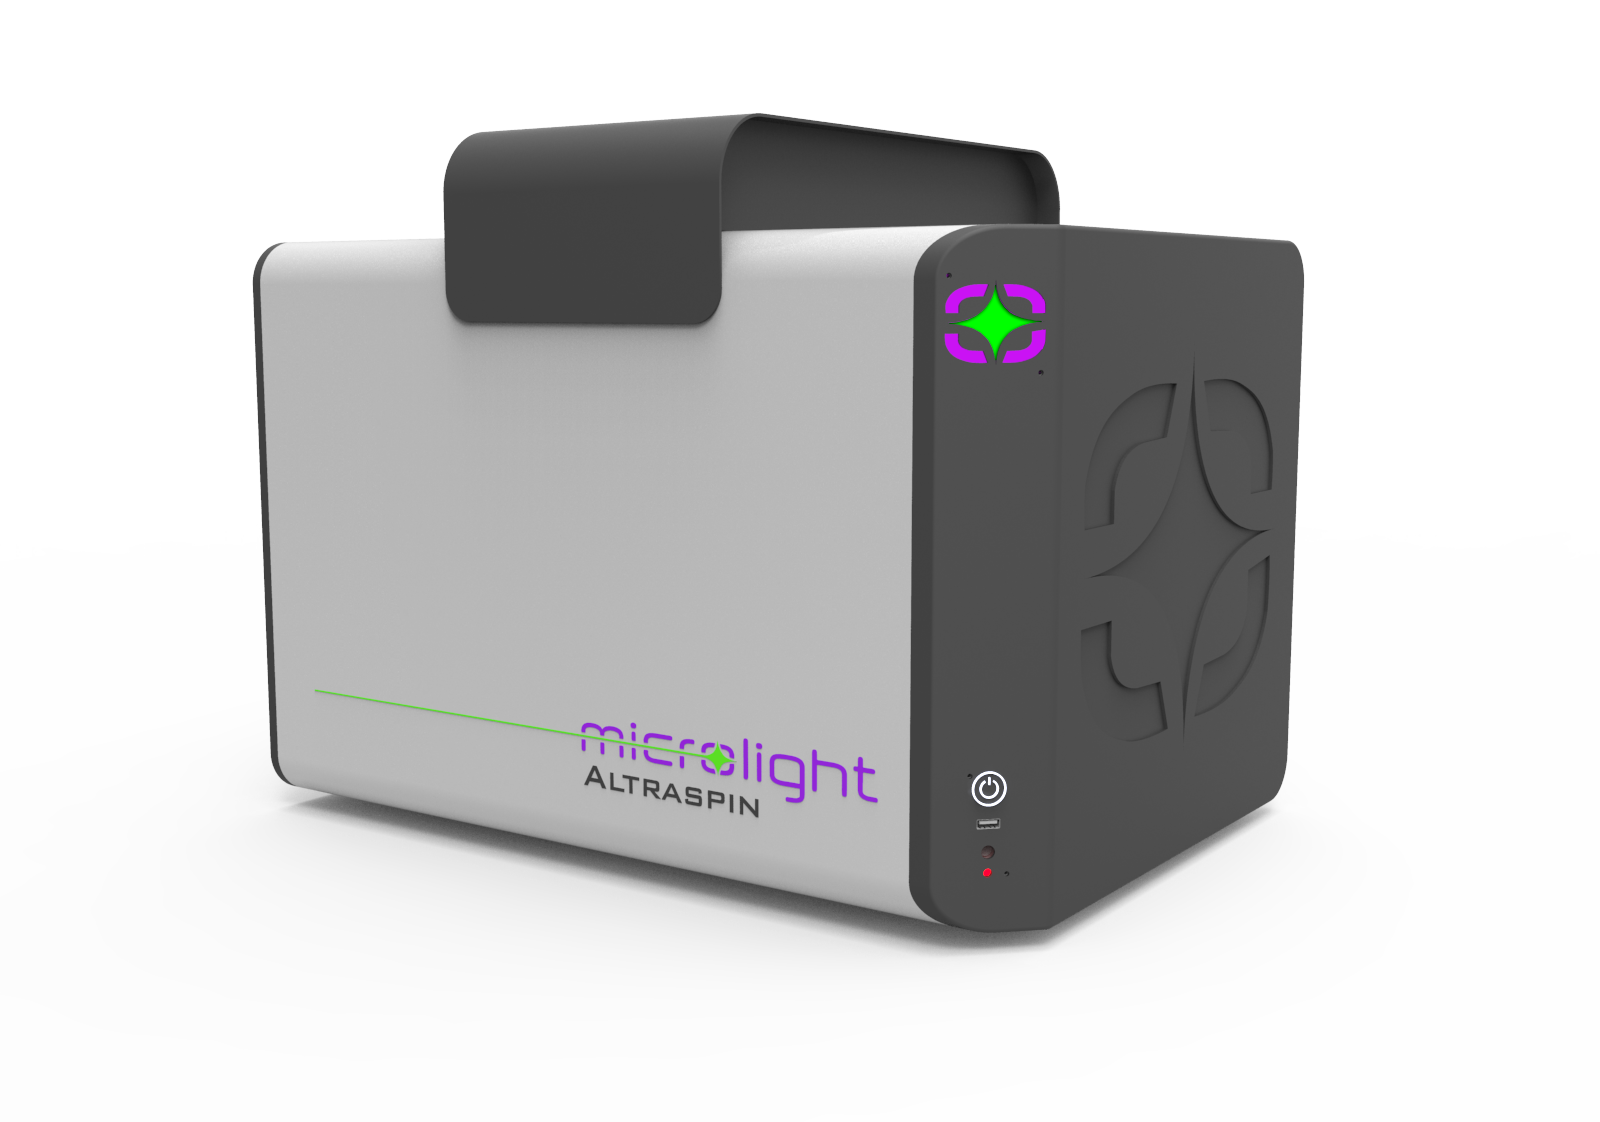 Microlight3D Project nAngioDerm Receives €747,000 Grant to Advance Skin Regenration